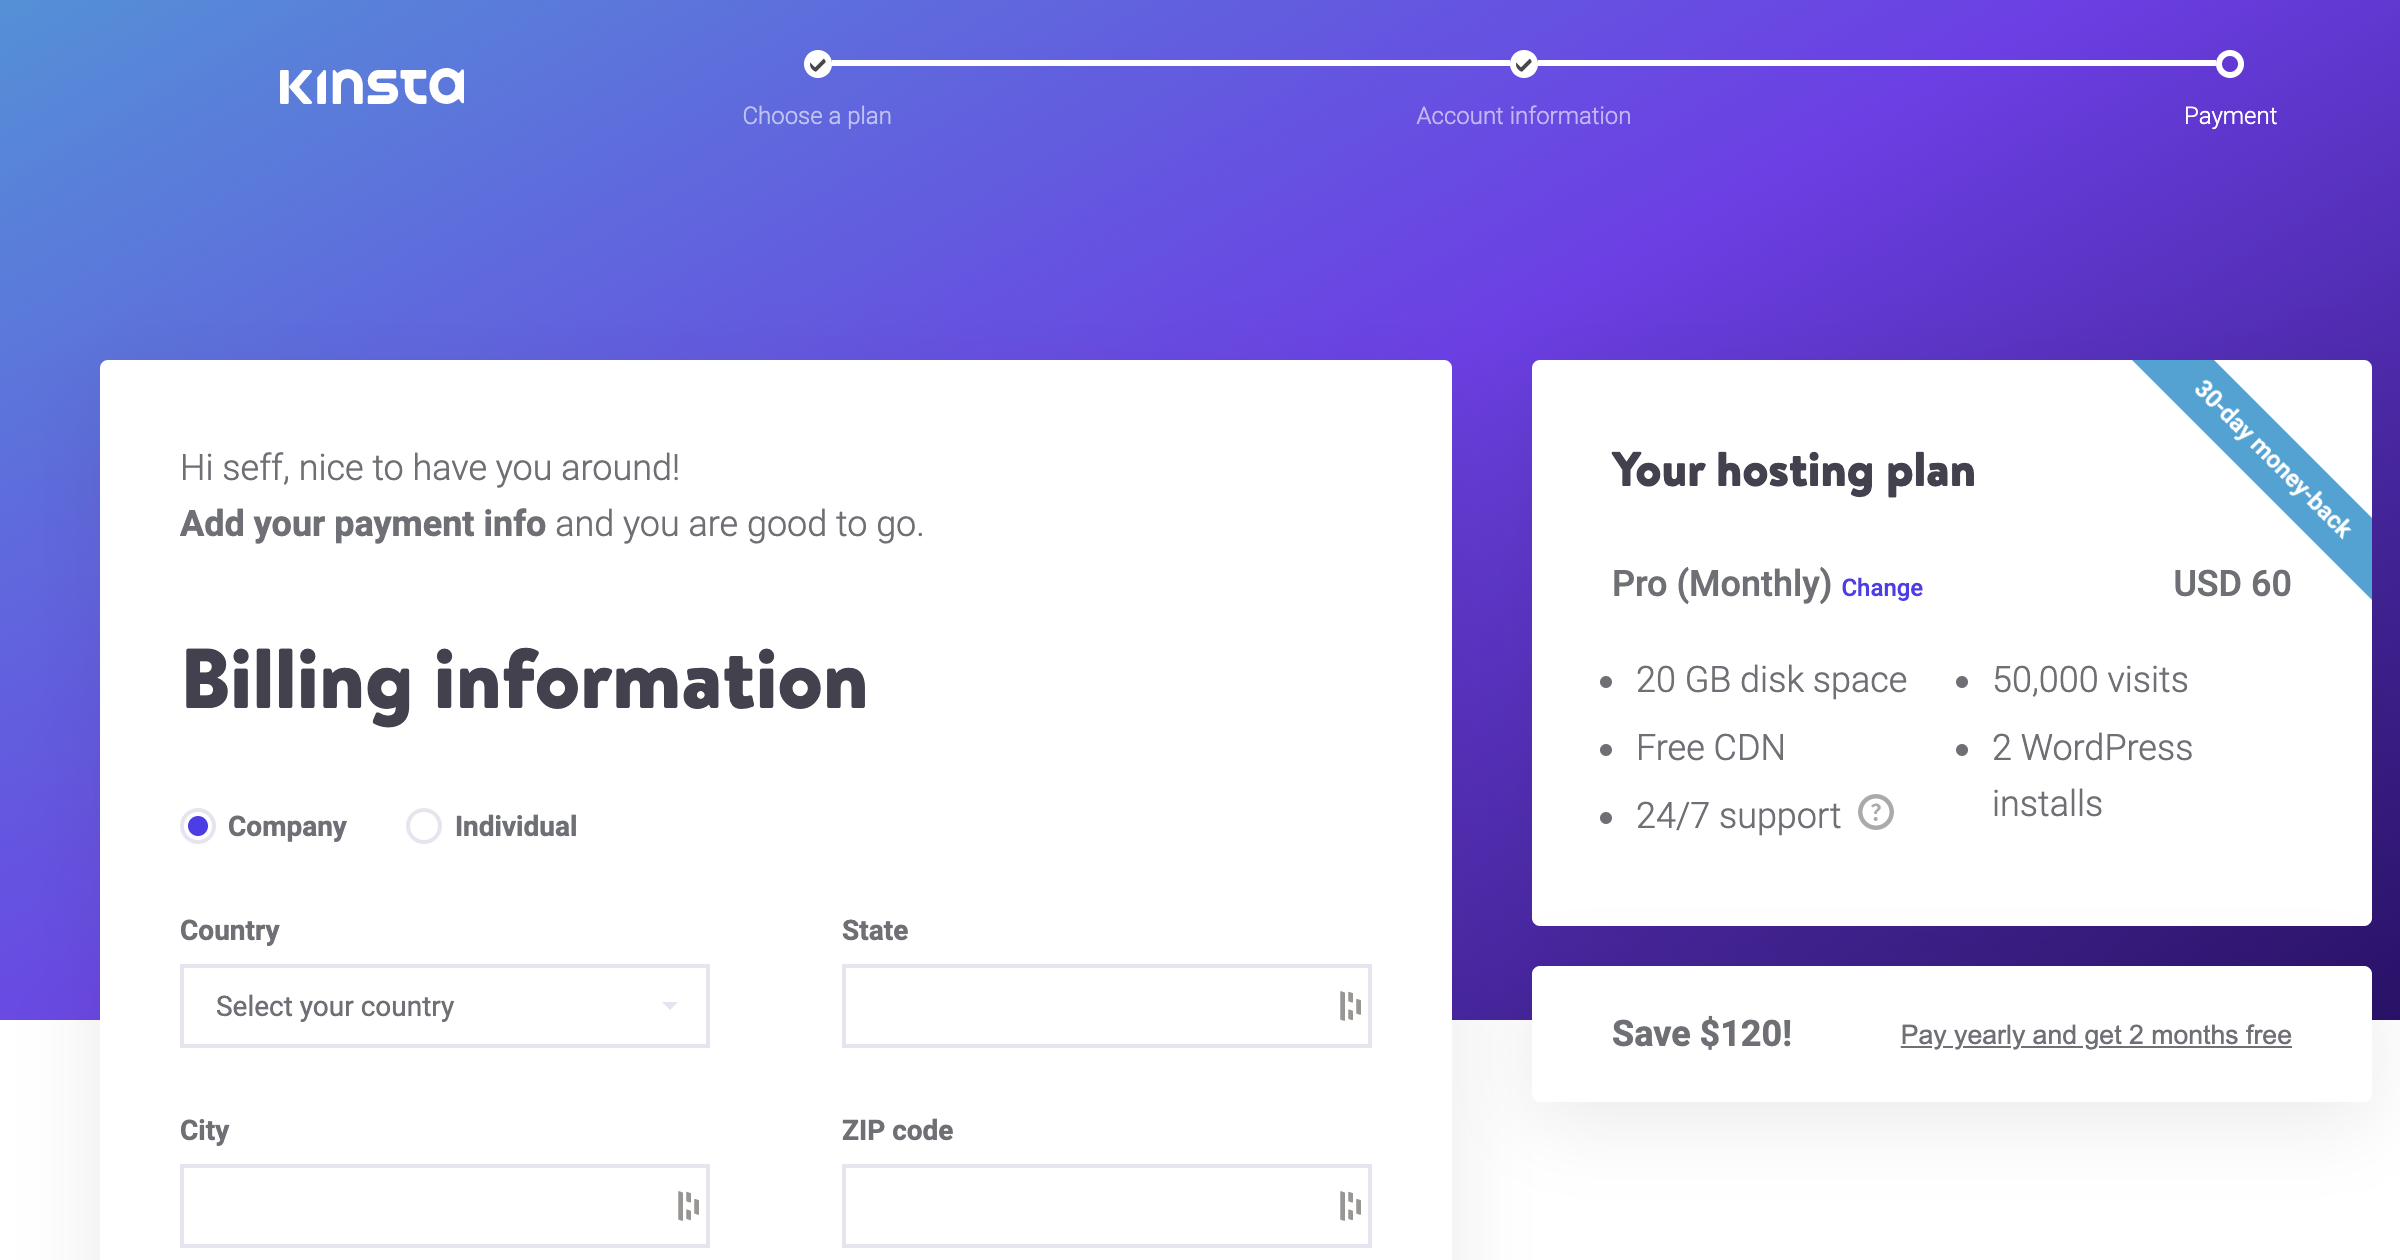 signing up with kinsta